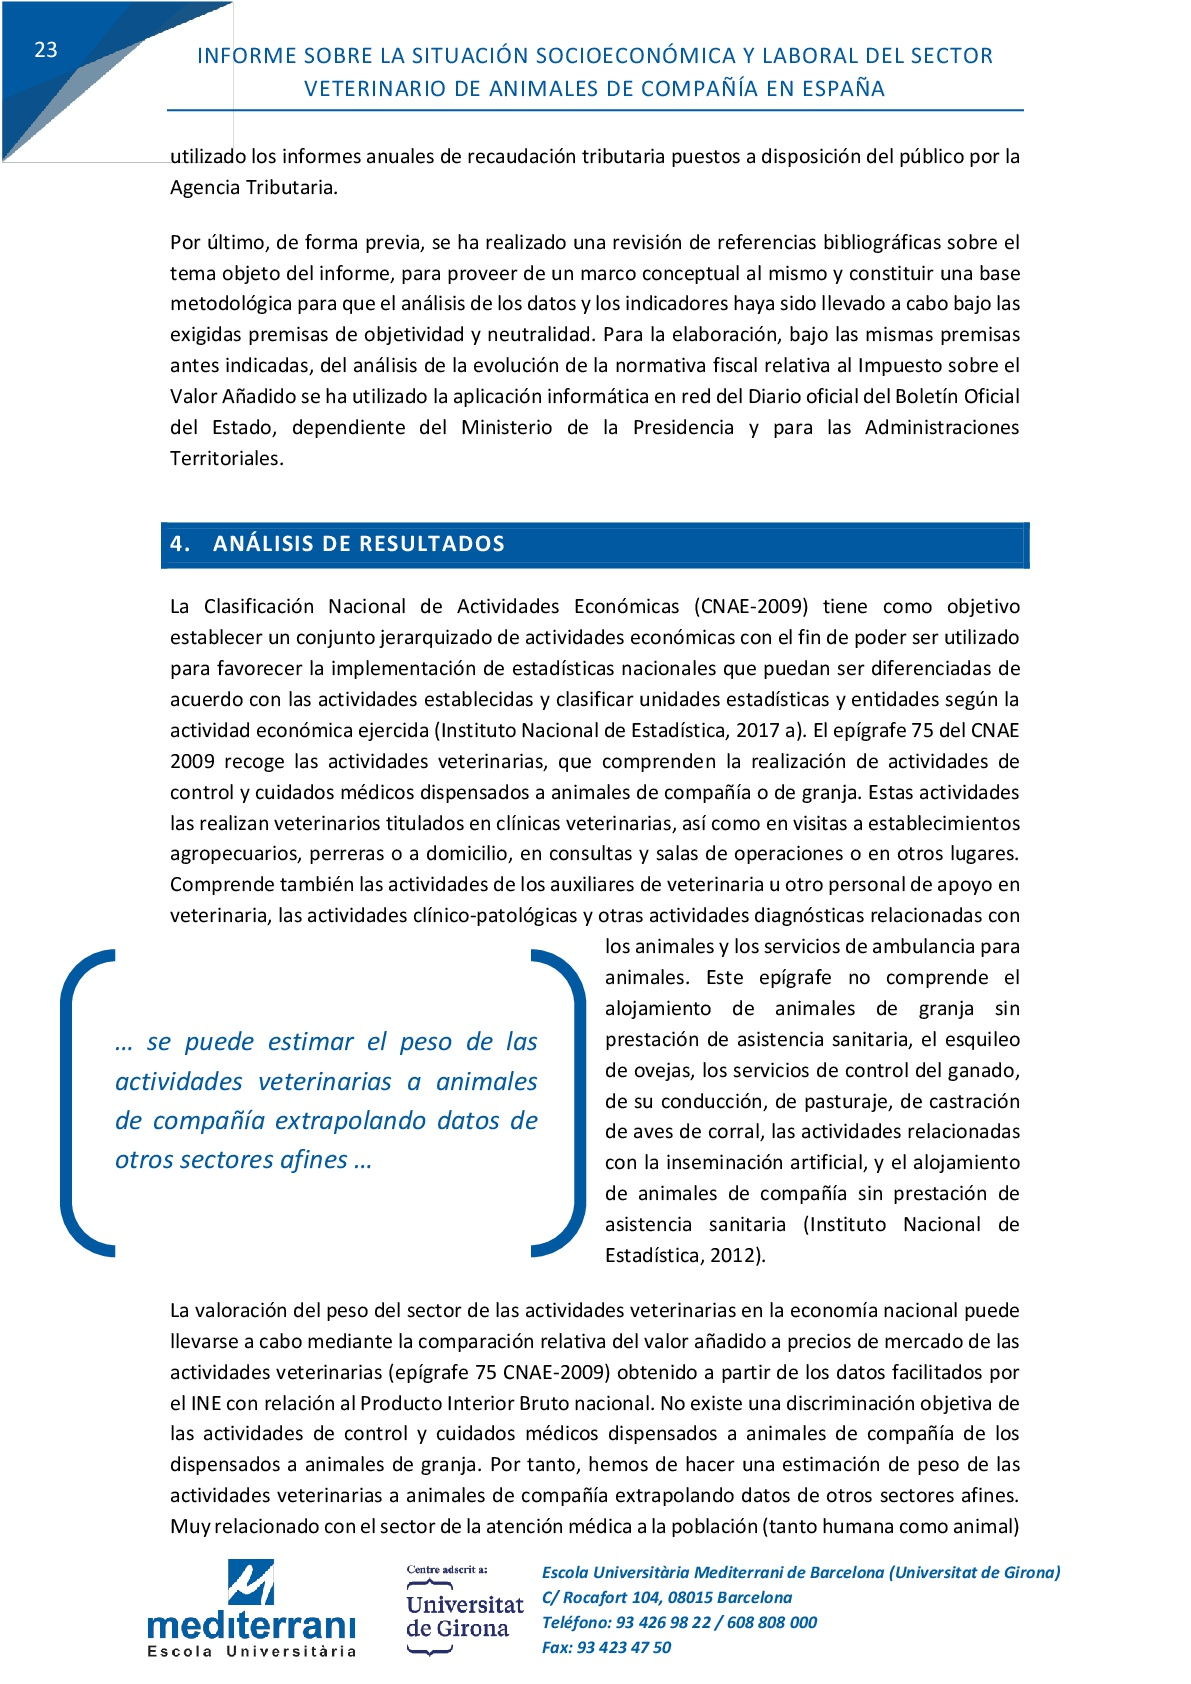 Informe-Veterinario-2017-+-informe-legal-2015-(3)-028